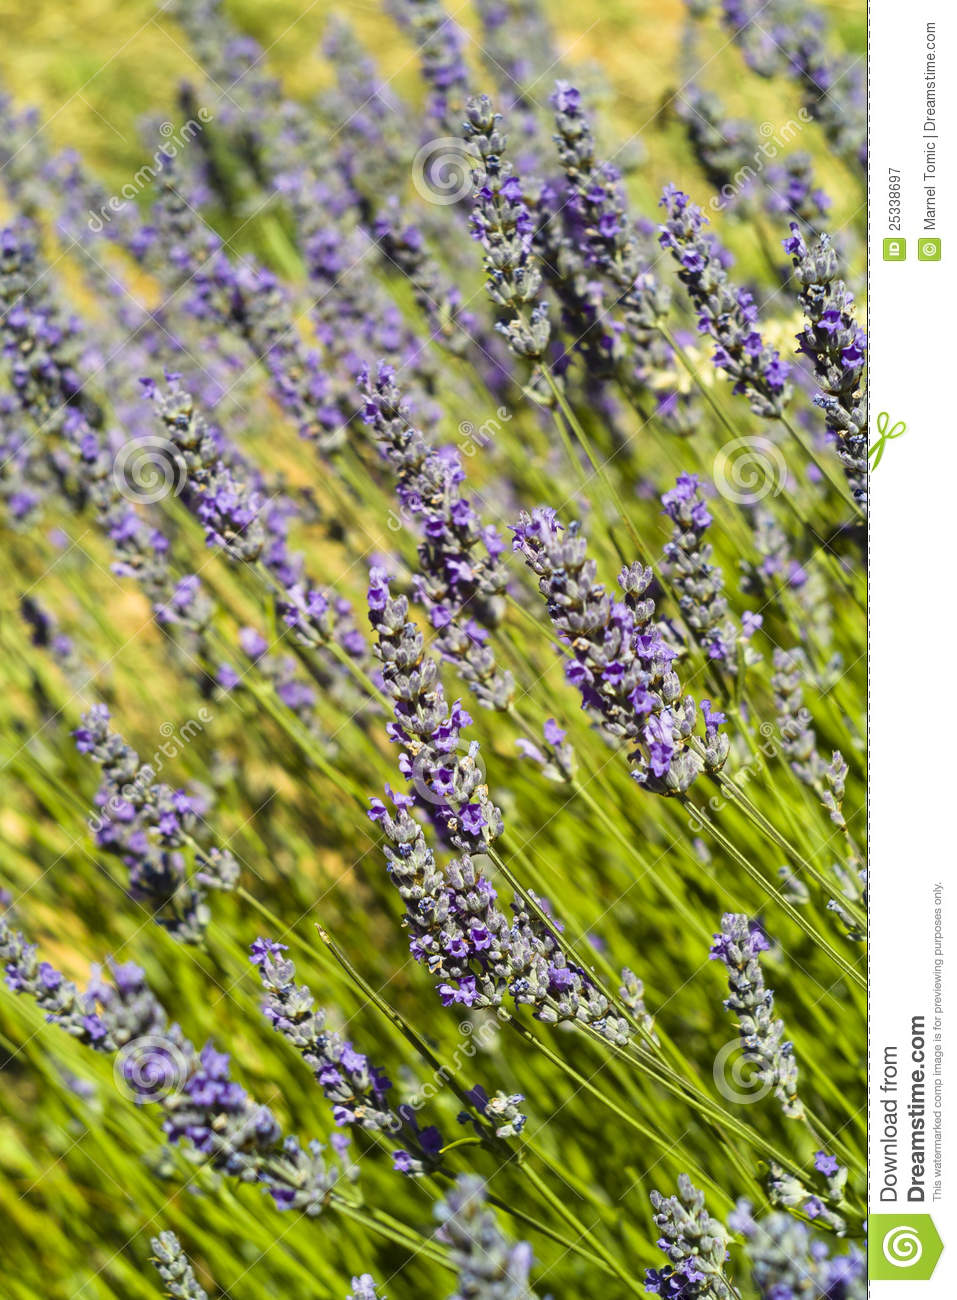 The lavender (Lavandula)